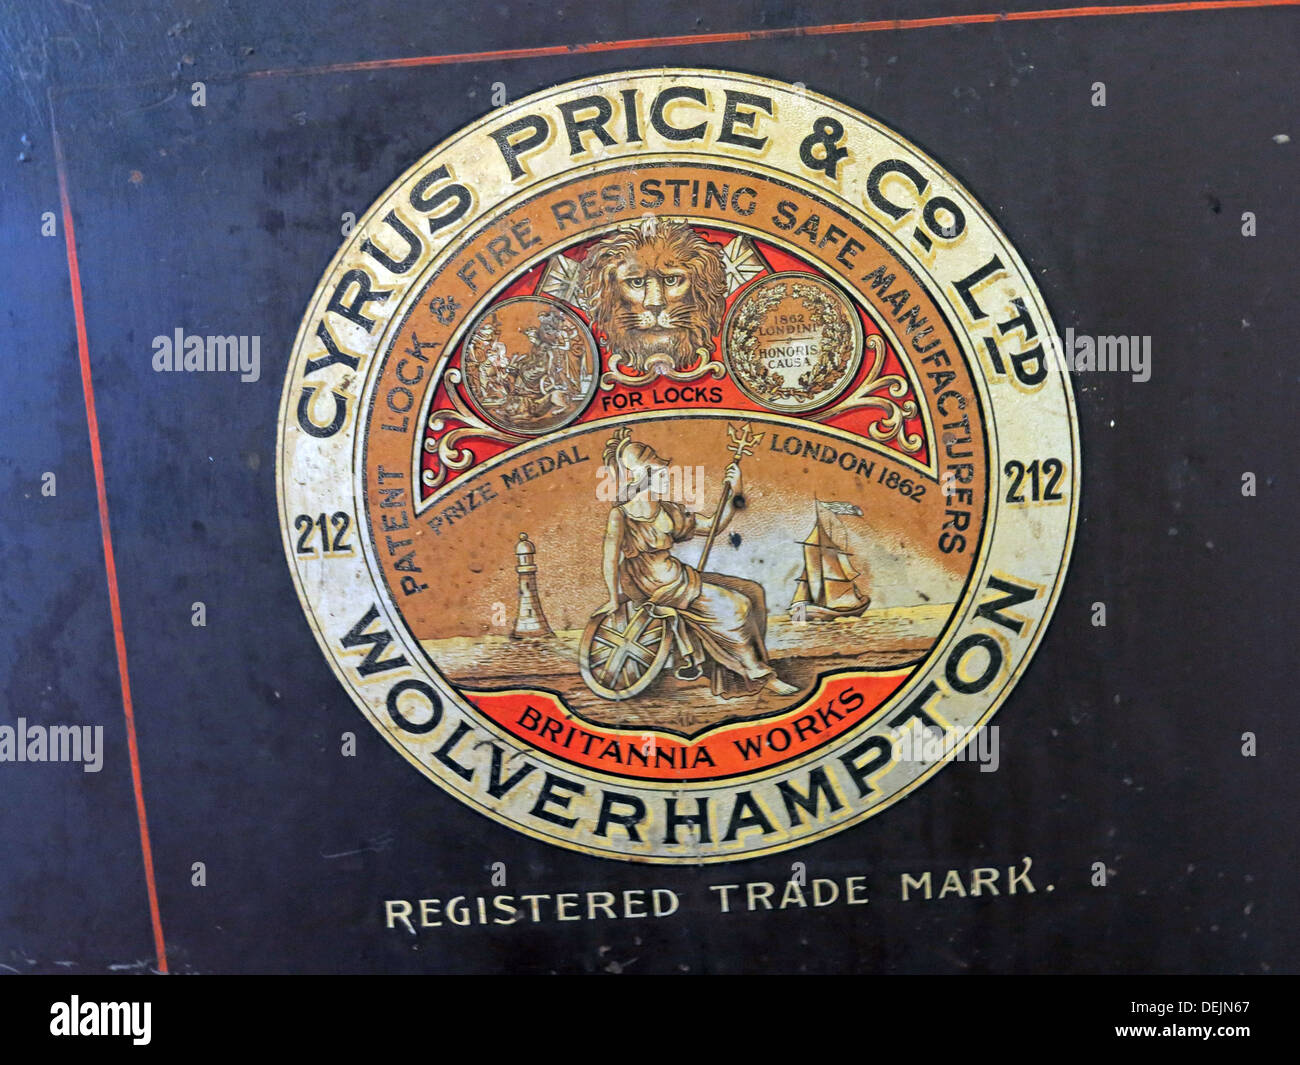 Safe label from Cyrus Price & Co Ltd Wolverhampton 212 - Registered Trade Mark - Stock Image